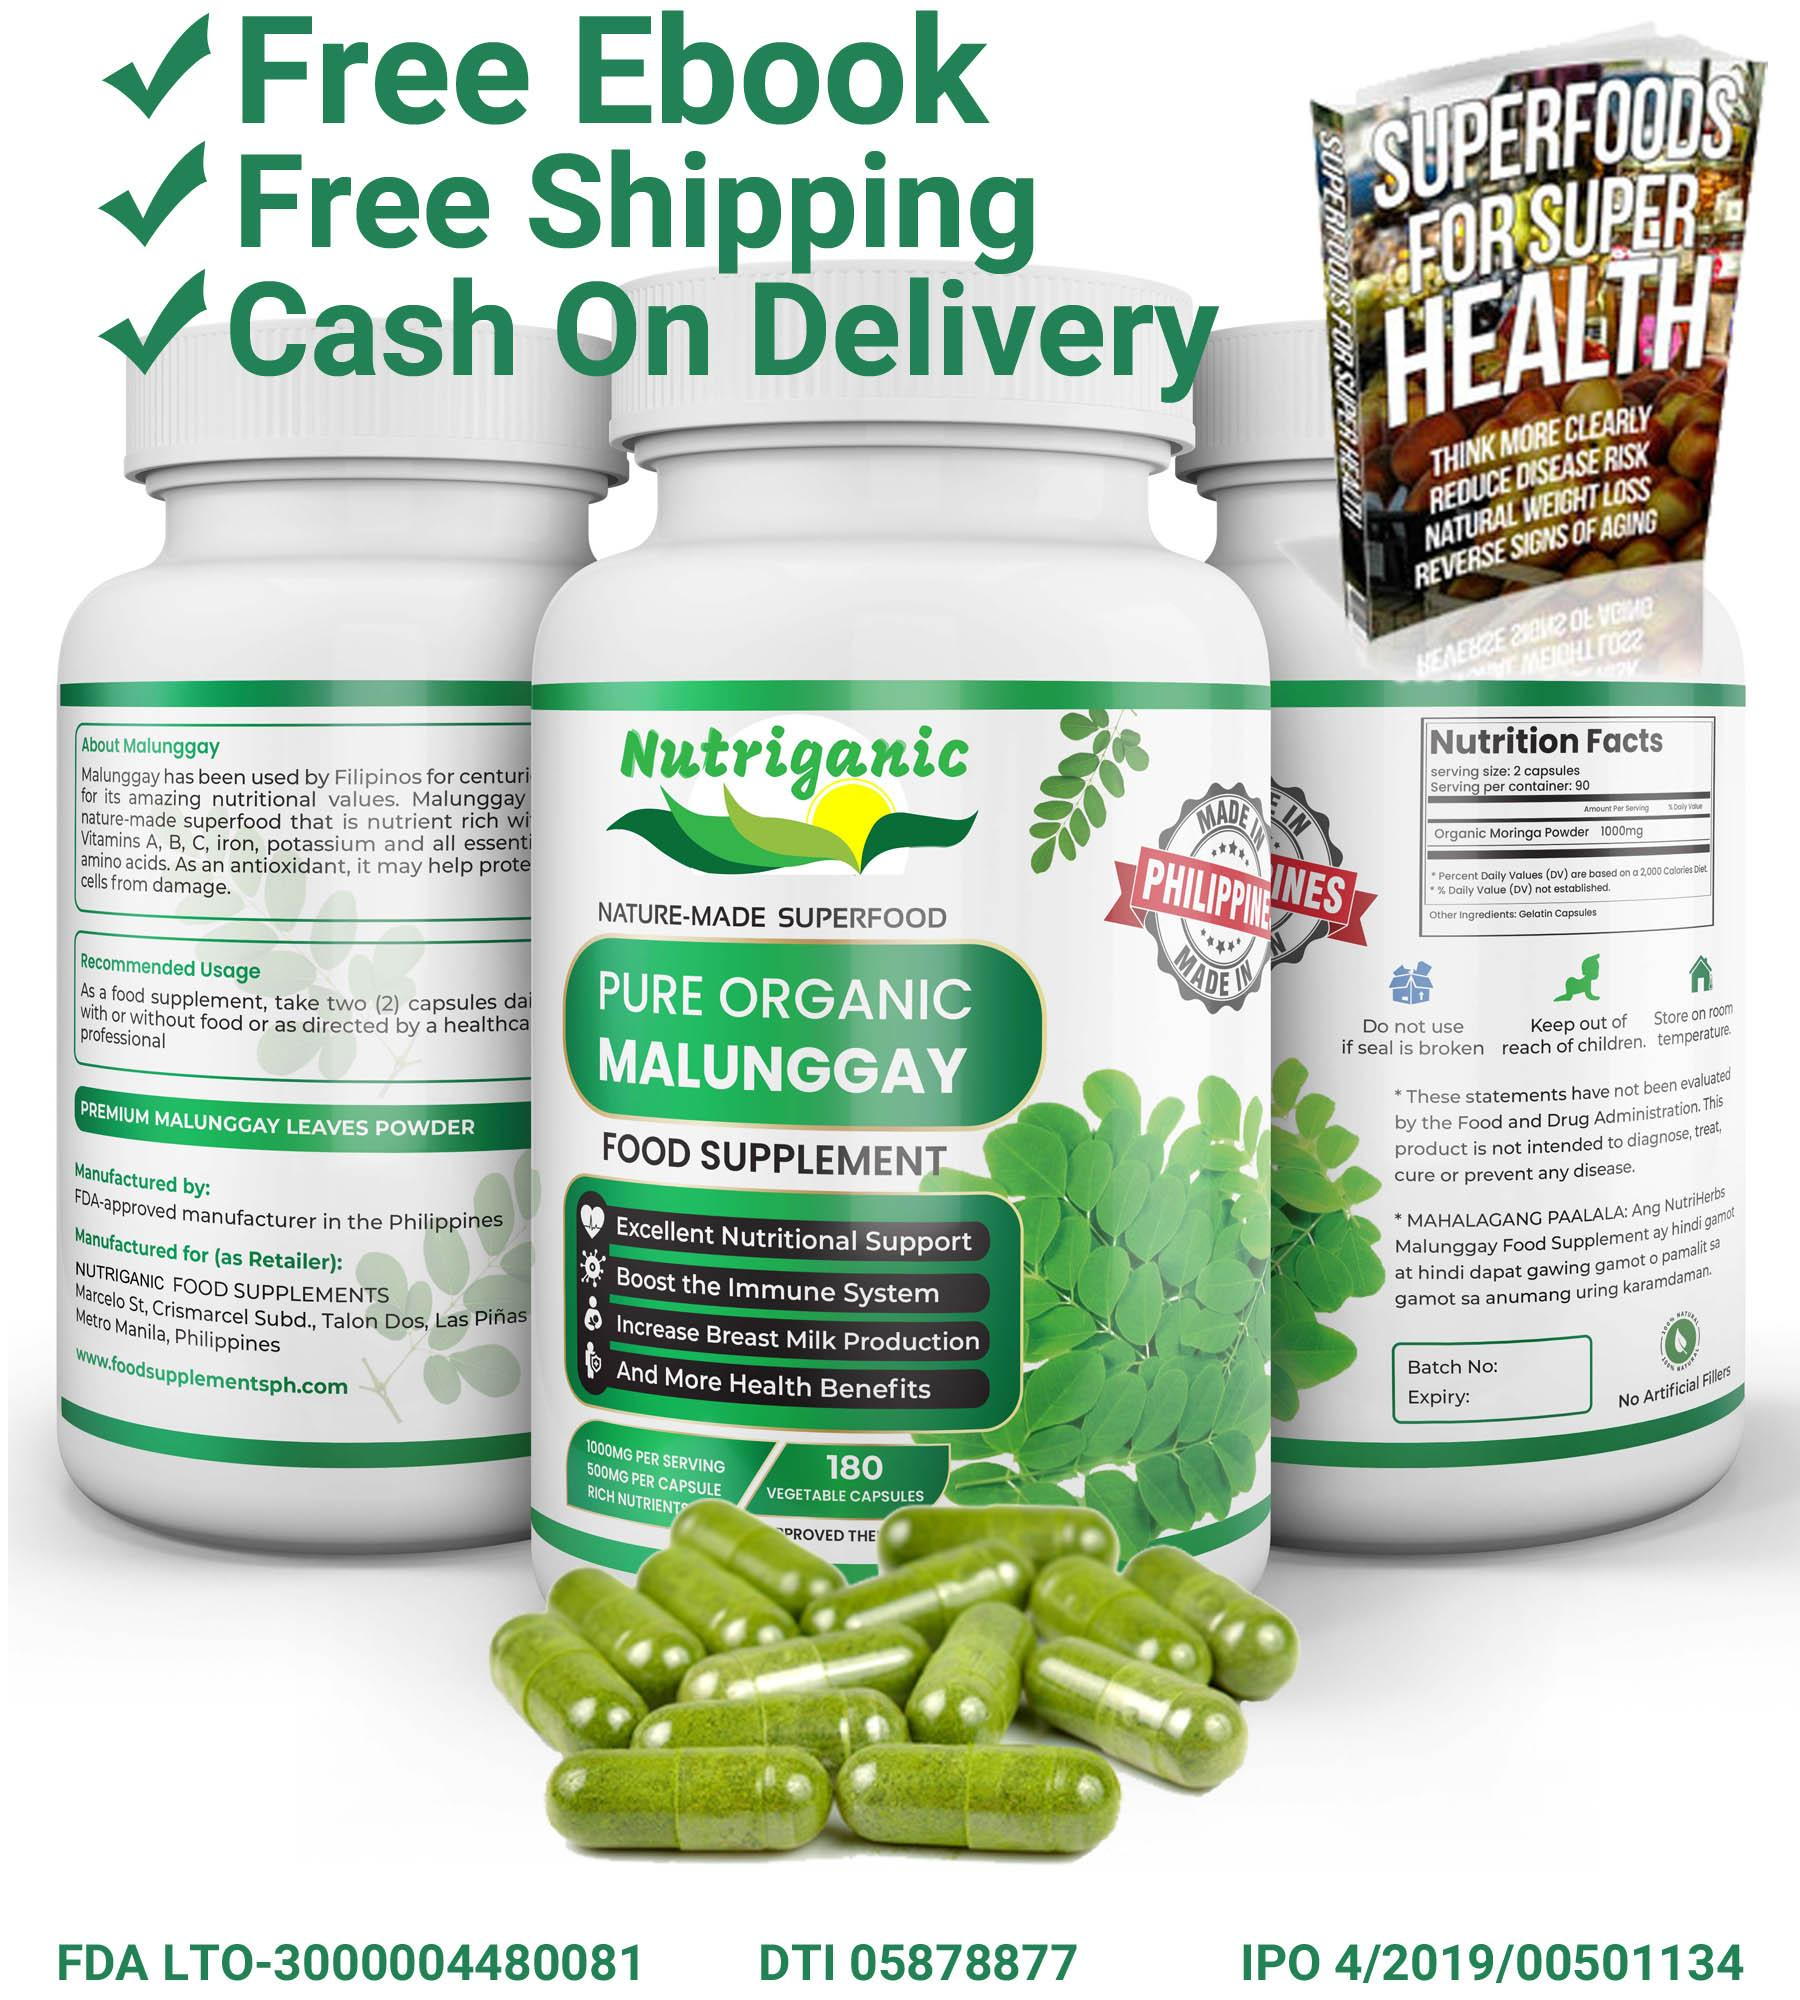 nutriganic malunggay capsule 180 vegetable capsules food complement organic  pure leaf moringa powder 500mg , nature-made health food, excellent